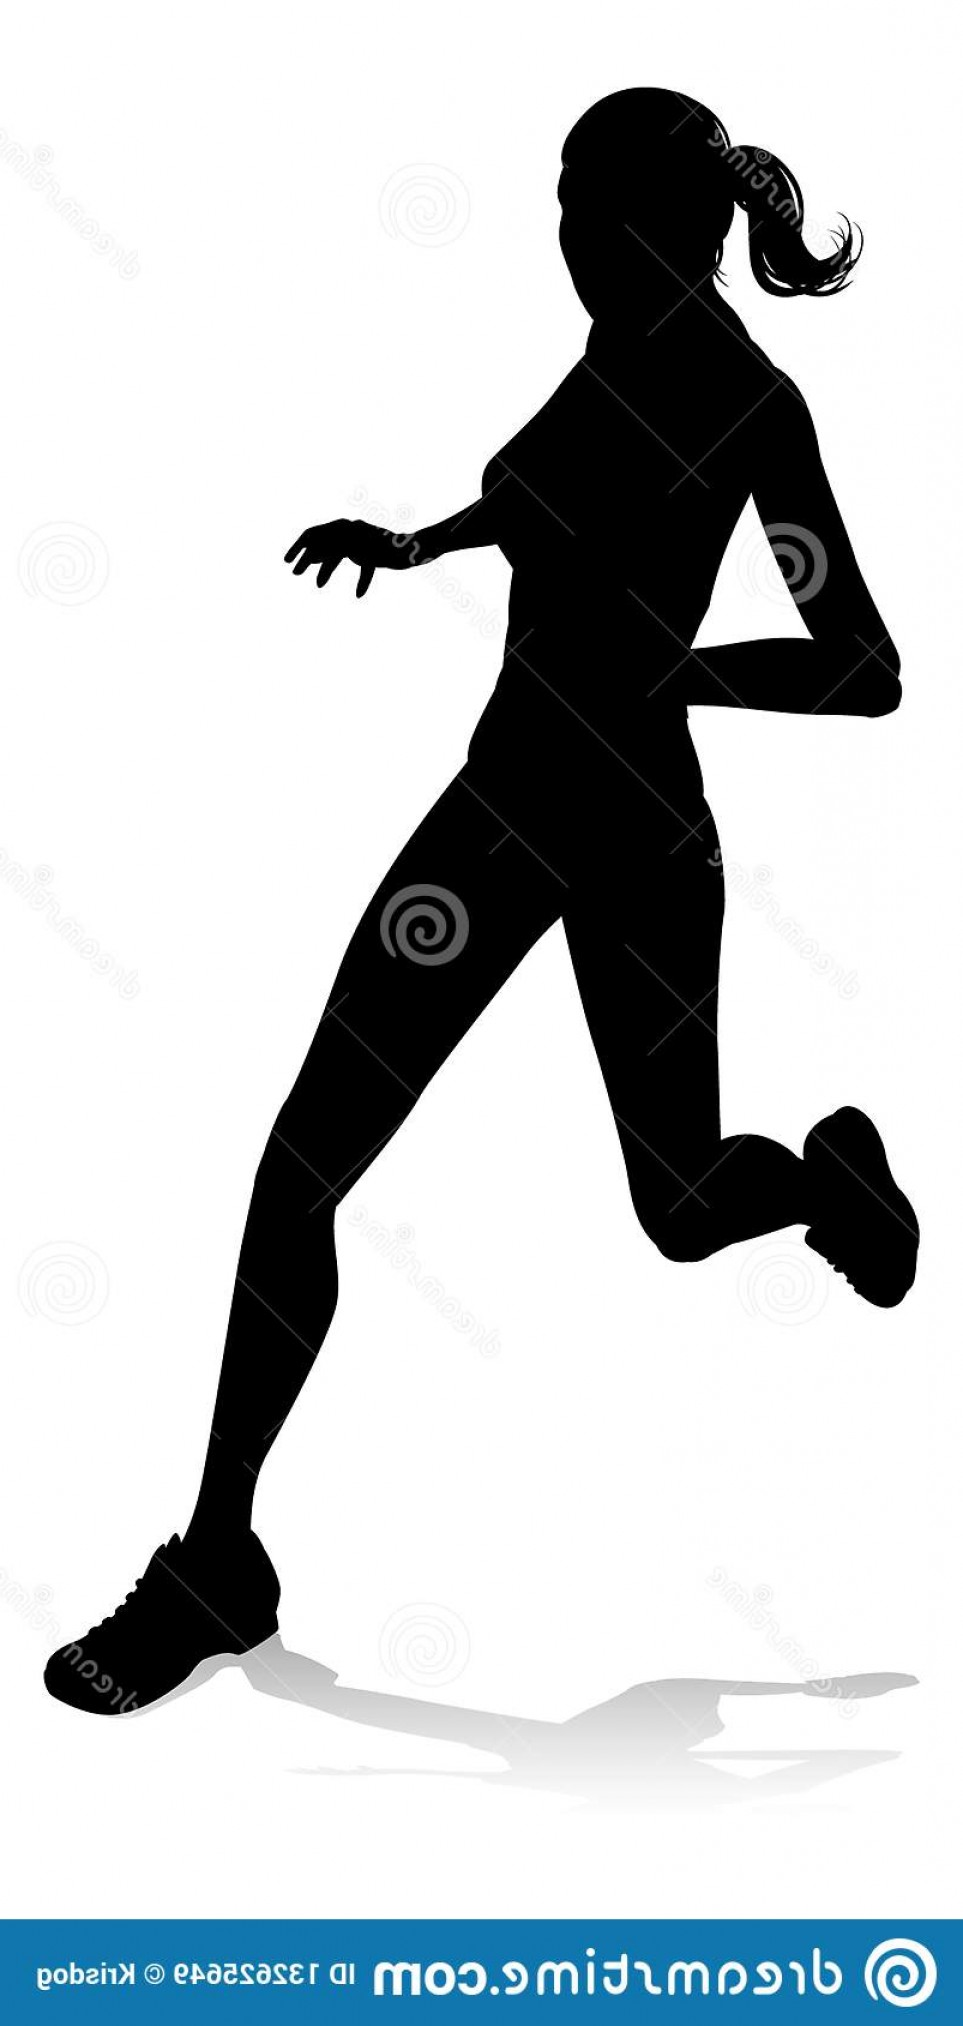 Vector Silhouette Of Girl Running Track: Silhouette Runner Race Track Field Event Runner Racing Track Field Silhouette Image